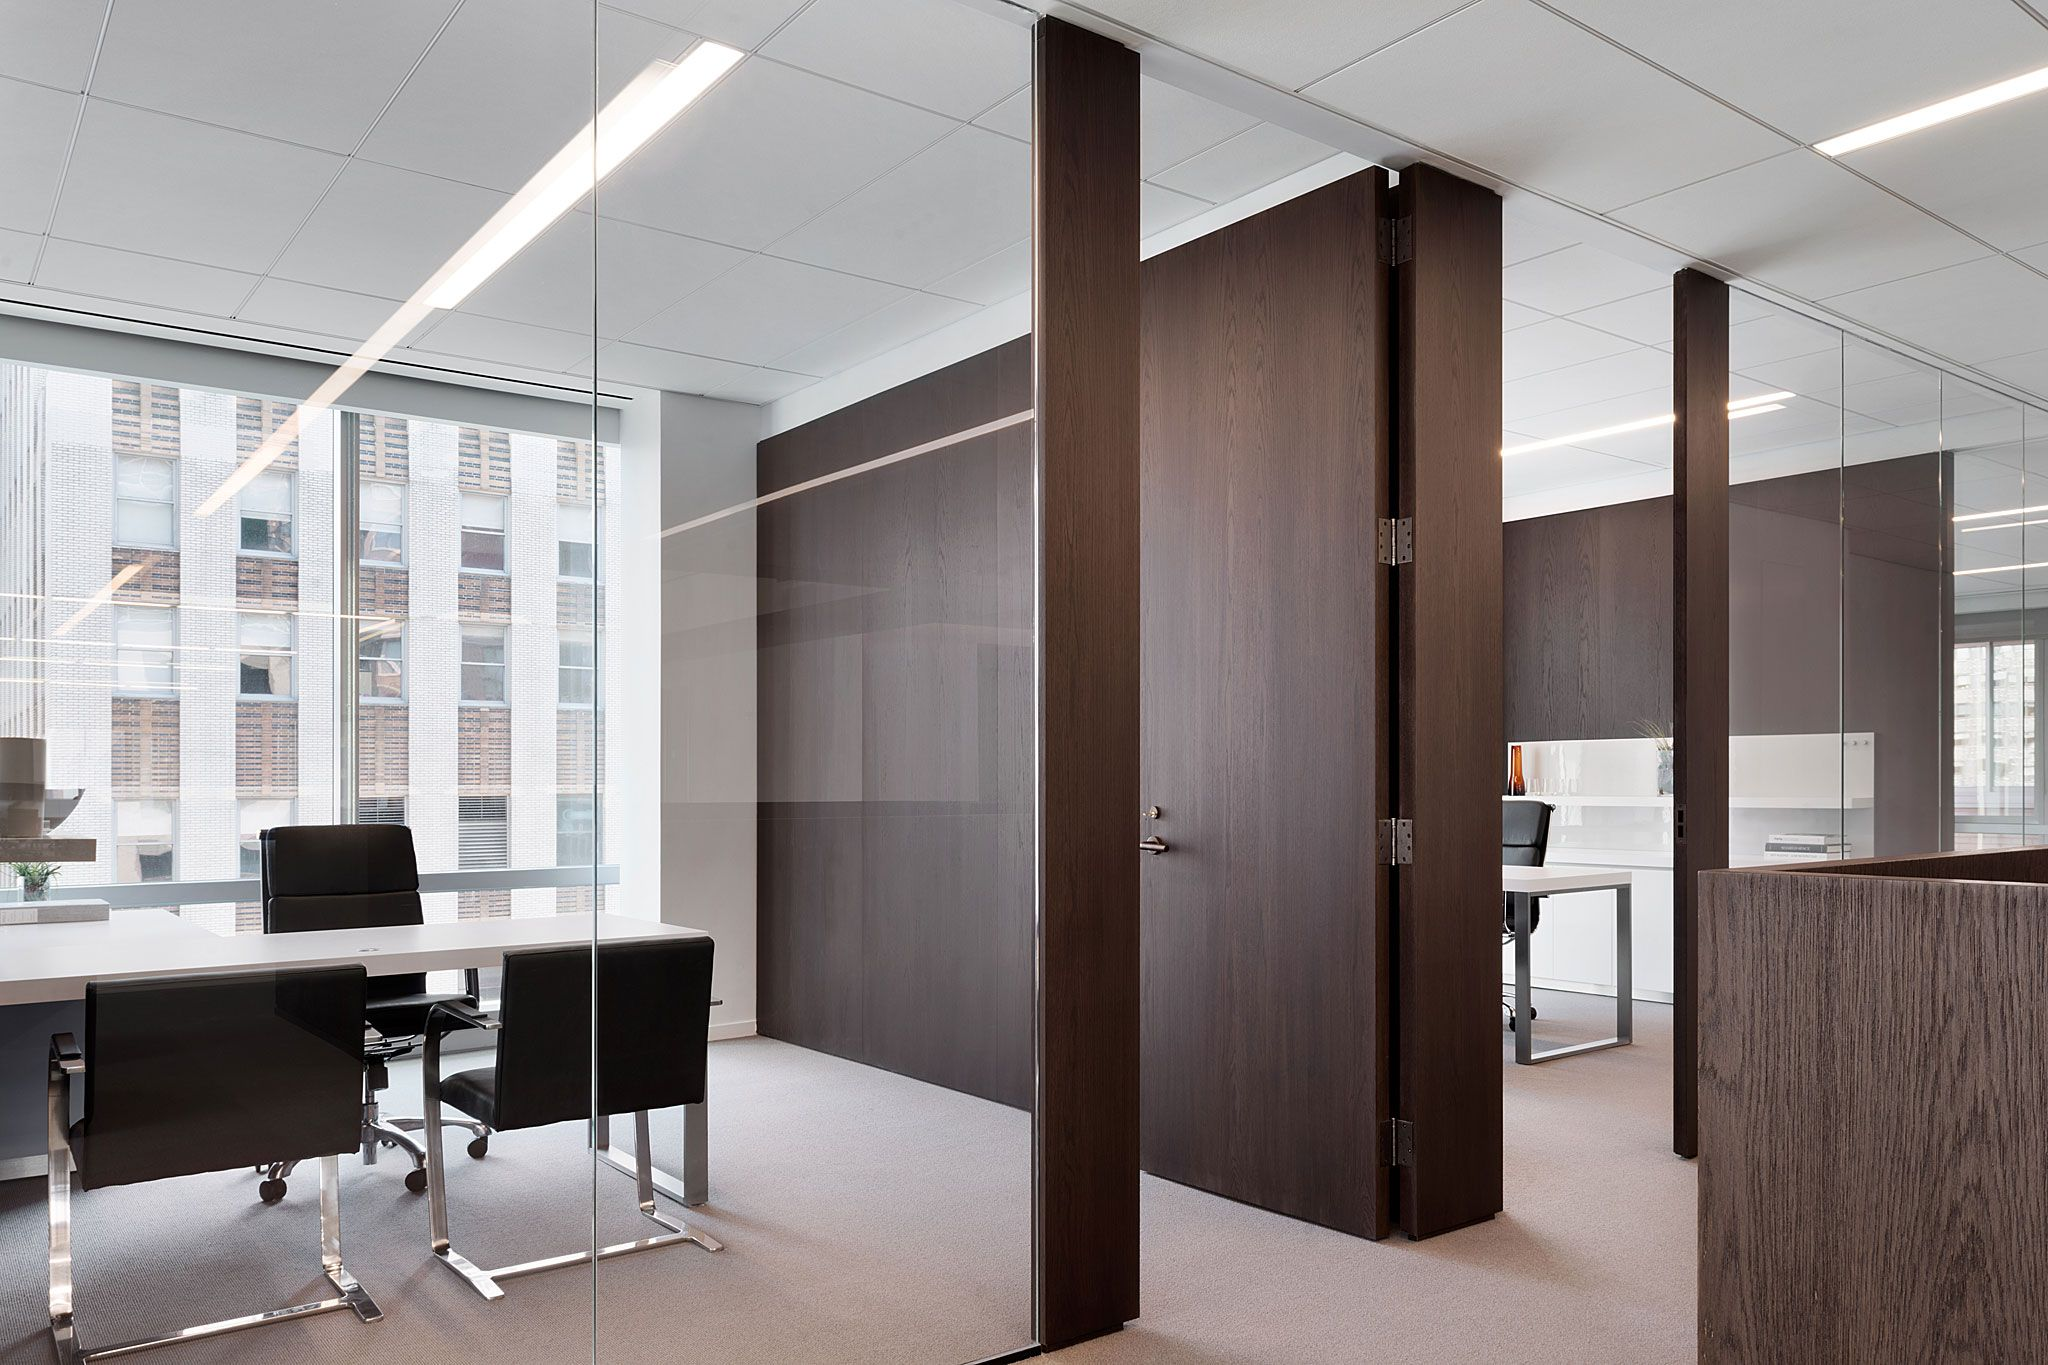 Tewes design nyc executive office seattle interior design - Office Tour 222 East 41st Offices New York City Office Designs Office Spaces And Law Office Design